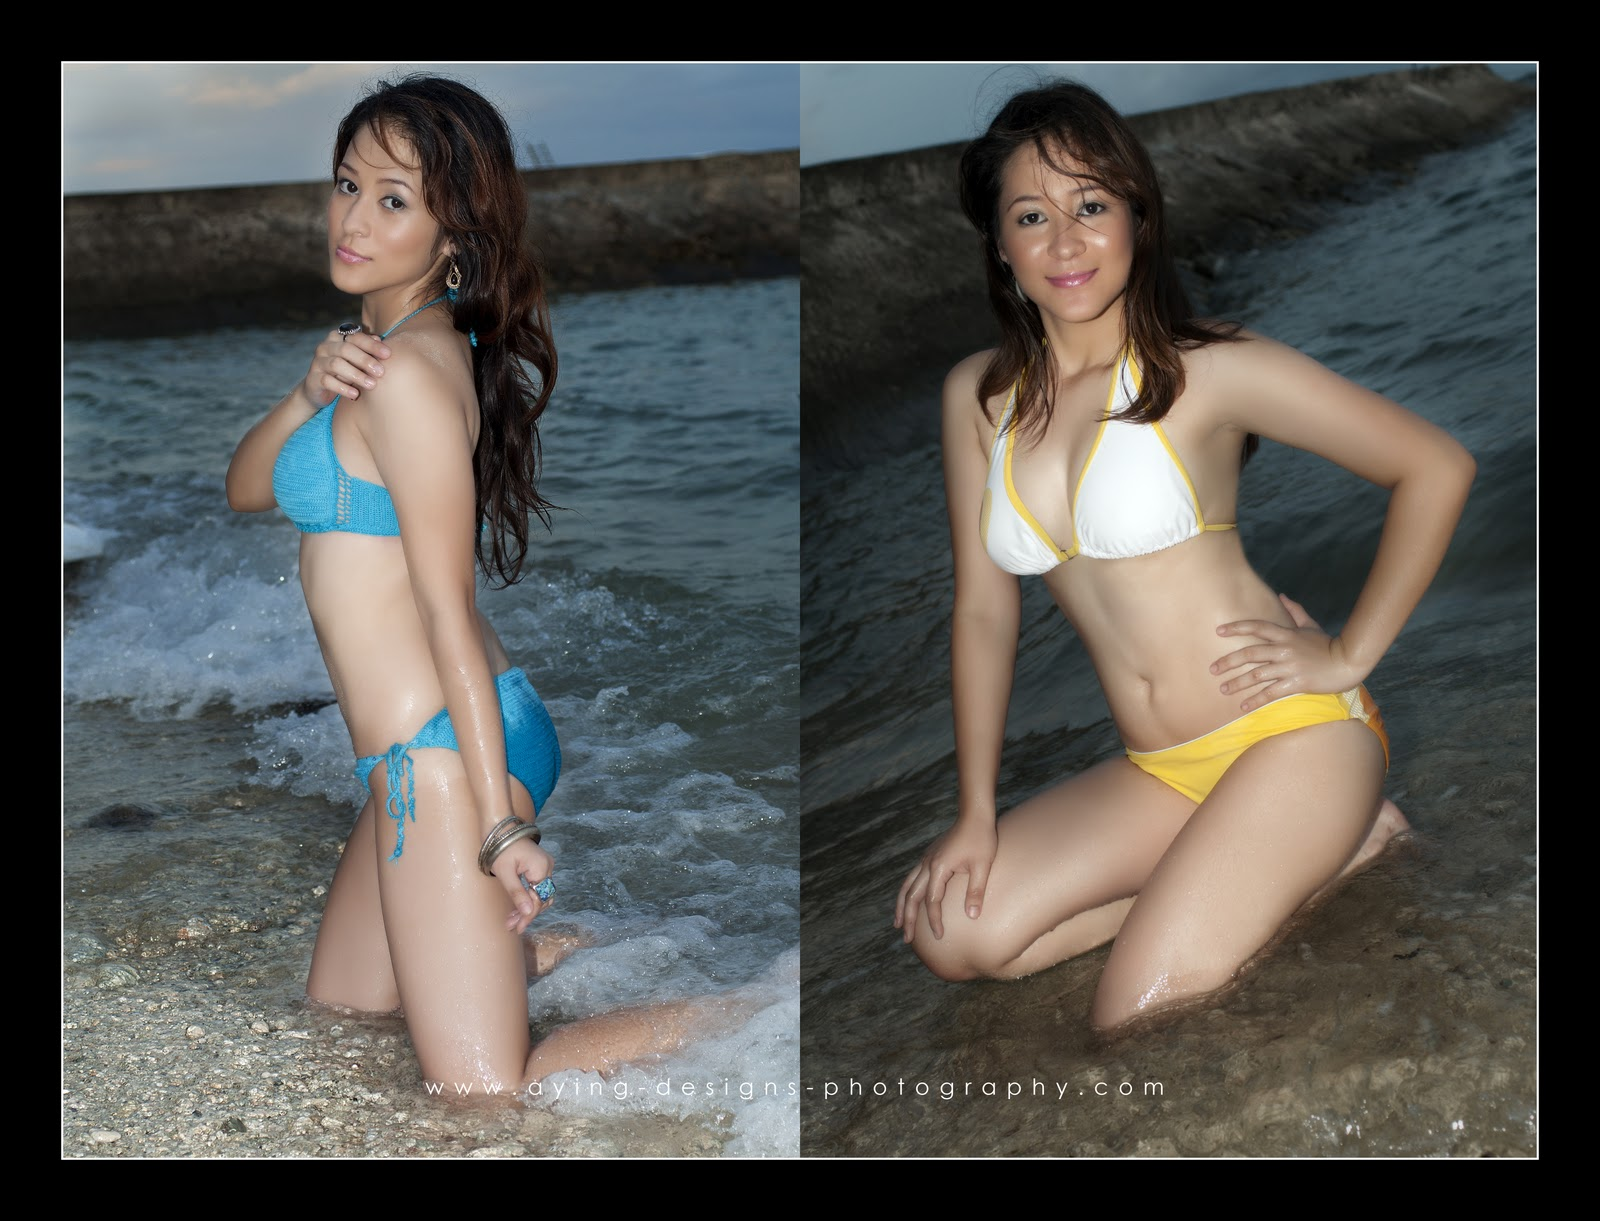 Re: SWIMWEAR PHOTOSHOOT